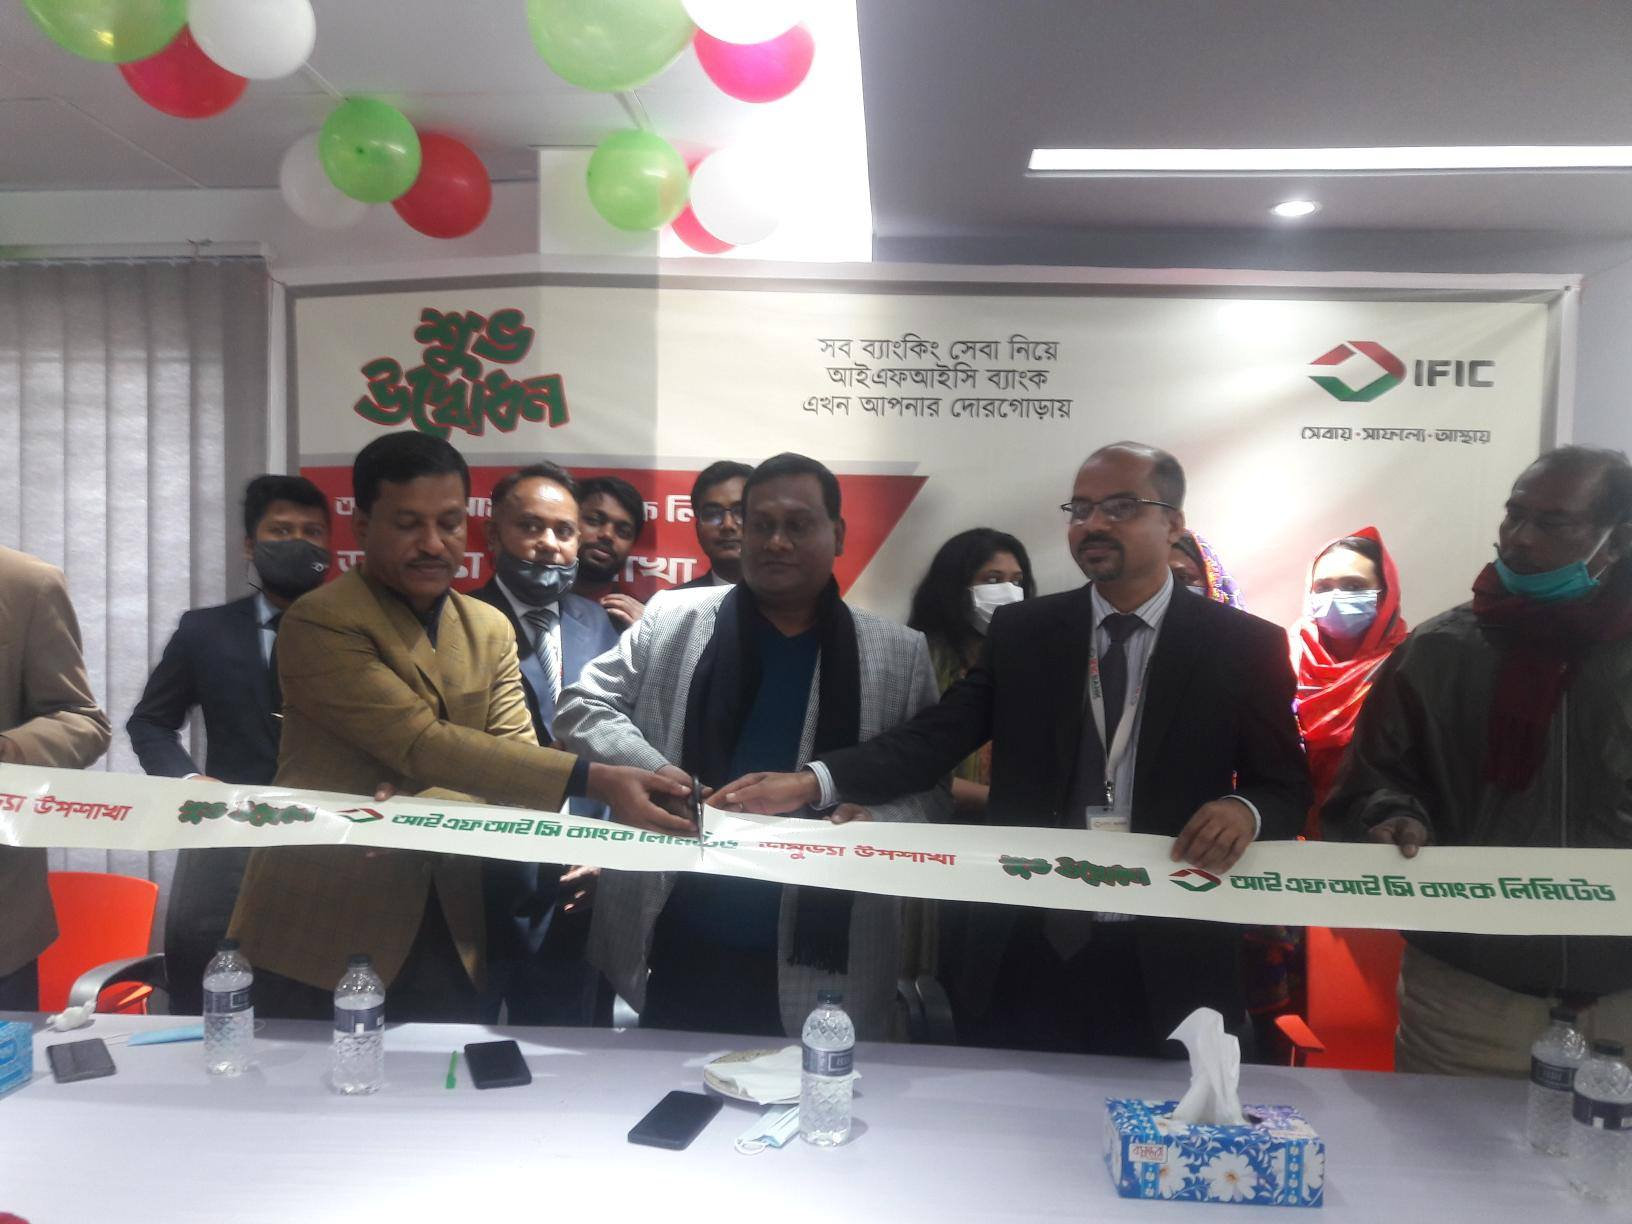 Sukanto Kumar Paul, Shariatpur district Manager of IFIC Bank Limited, inaugurating its sub-branch at SS Plaza in Damuddya in Shariatpur on Sunday. Abdur Rashid Golondaz, Vice Chairman of Damuddya Upazela Parishad and other local elites were also present.